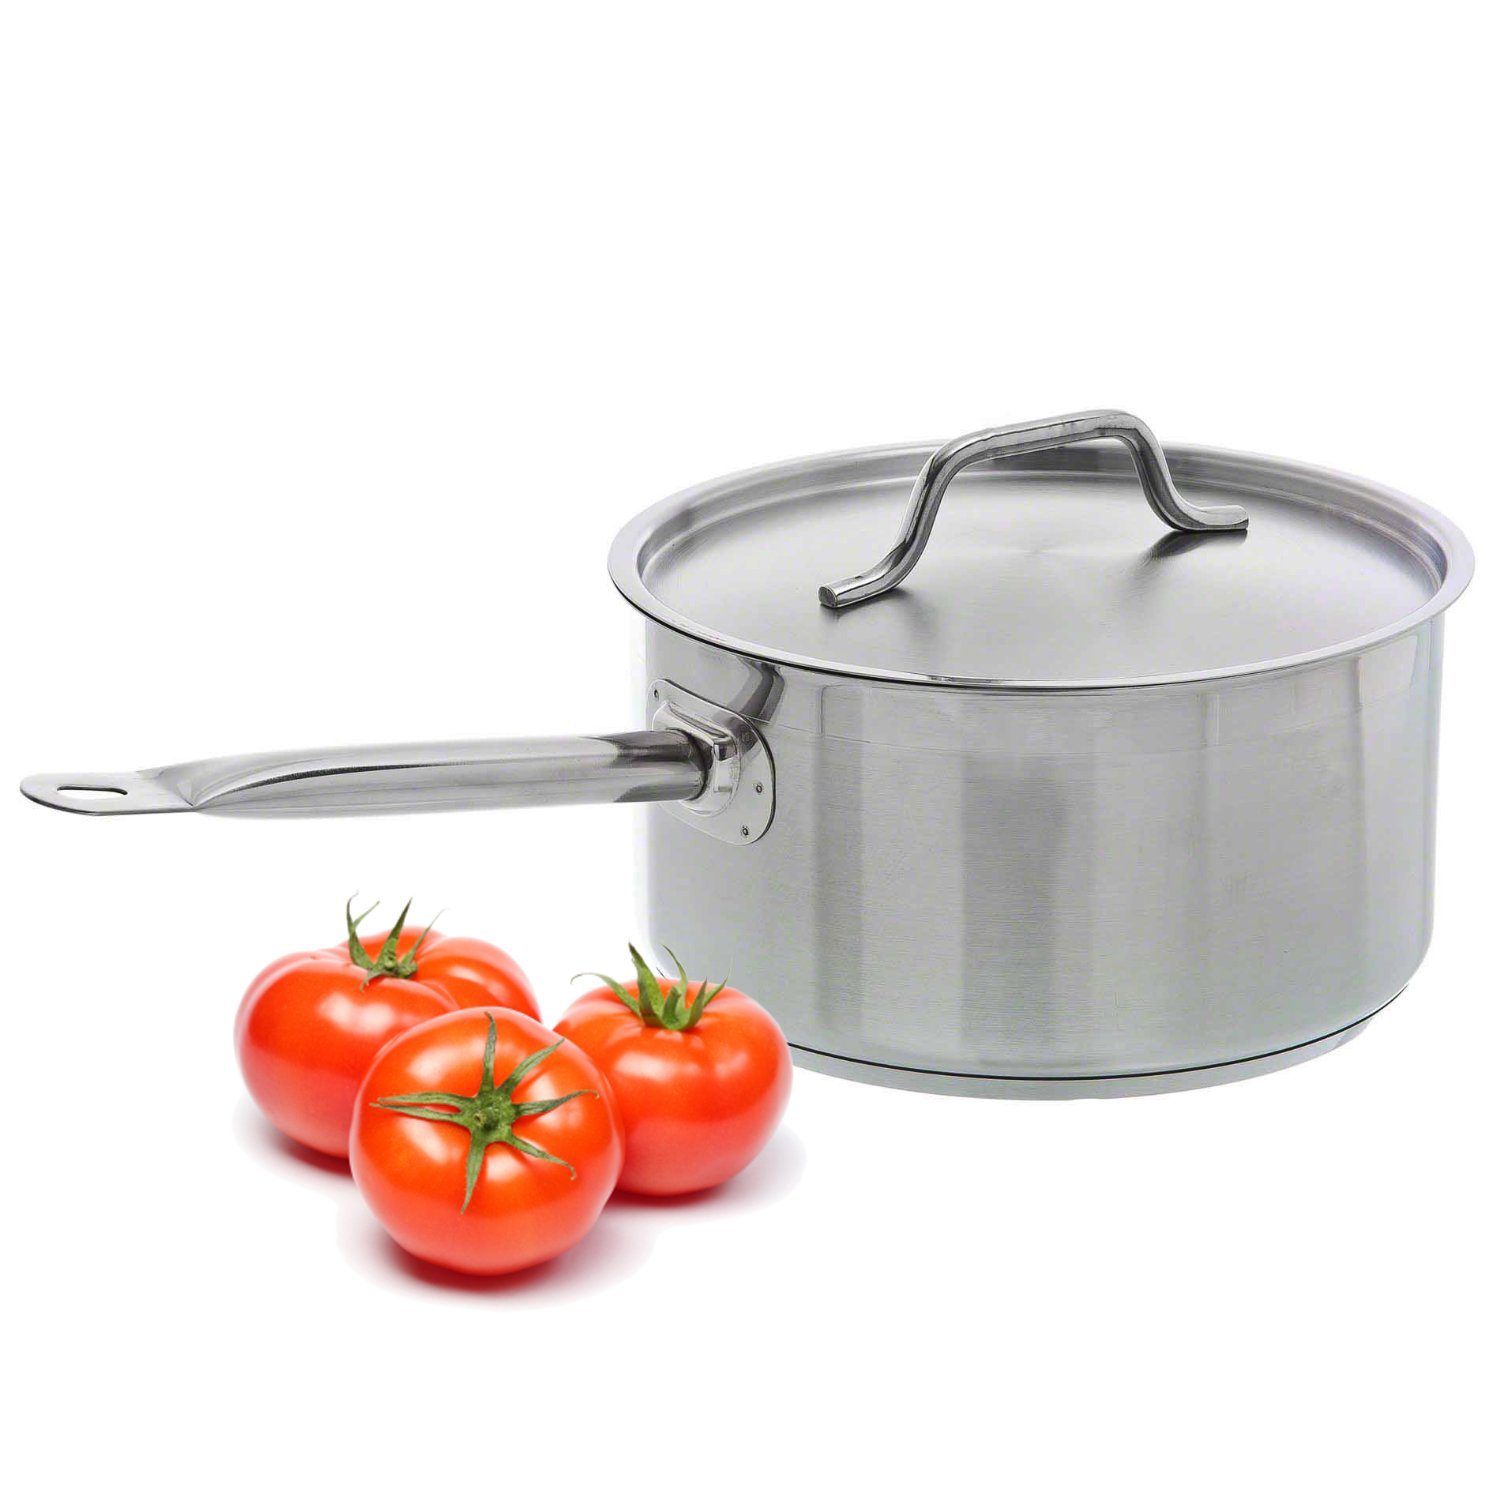 TrueCraftware Professional 3.5 Quart Stainless Steel Sauce Pan with Cover